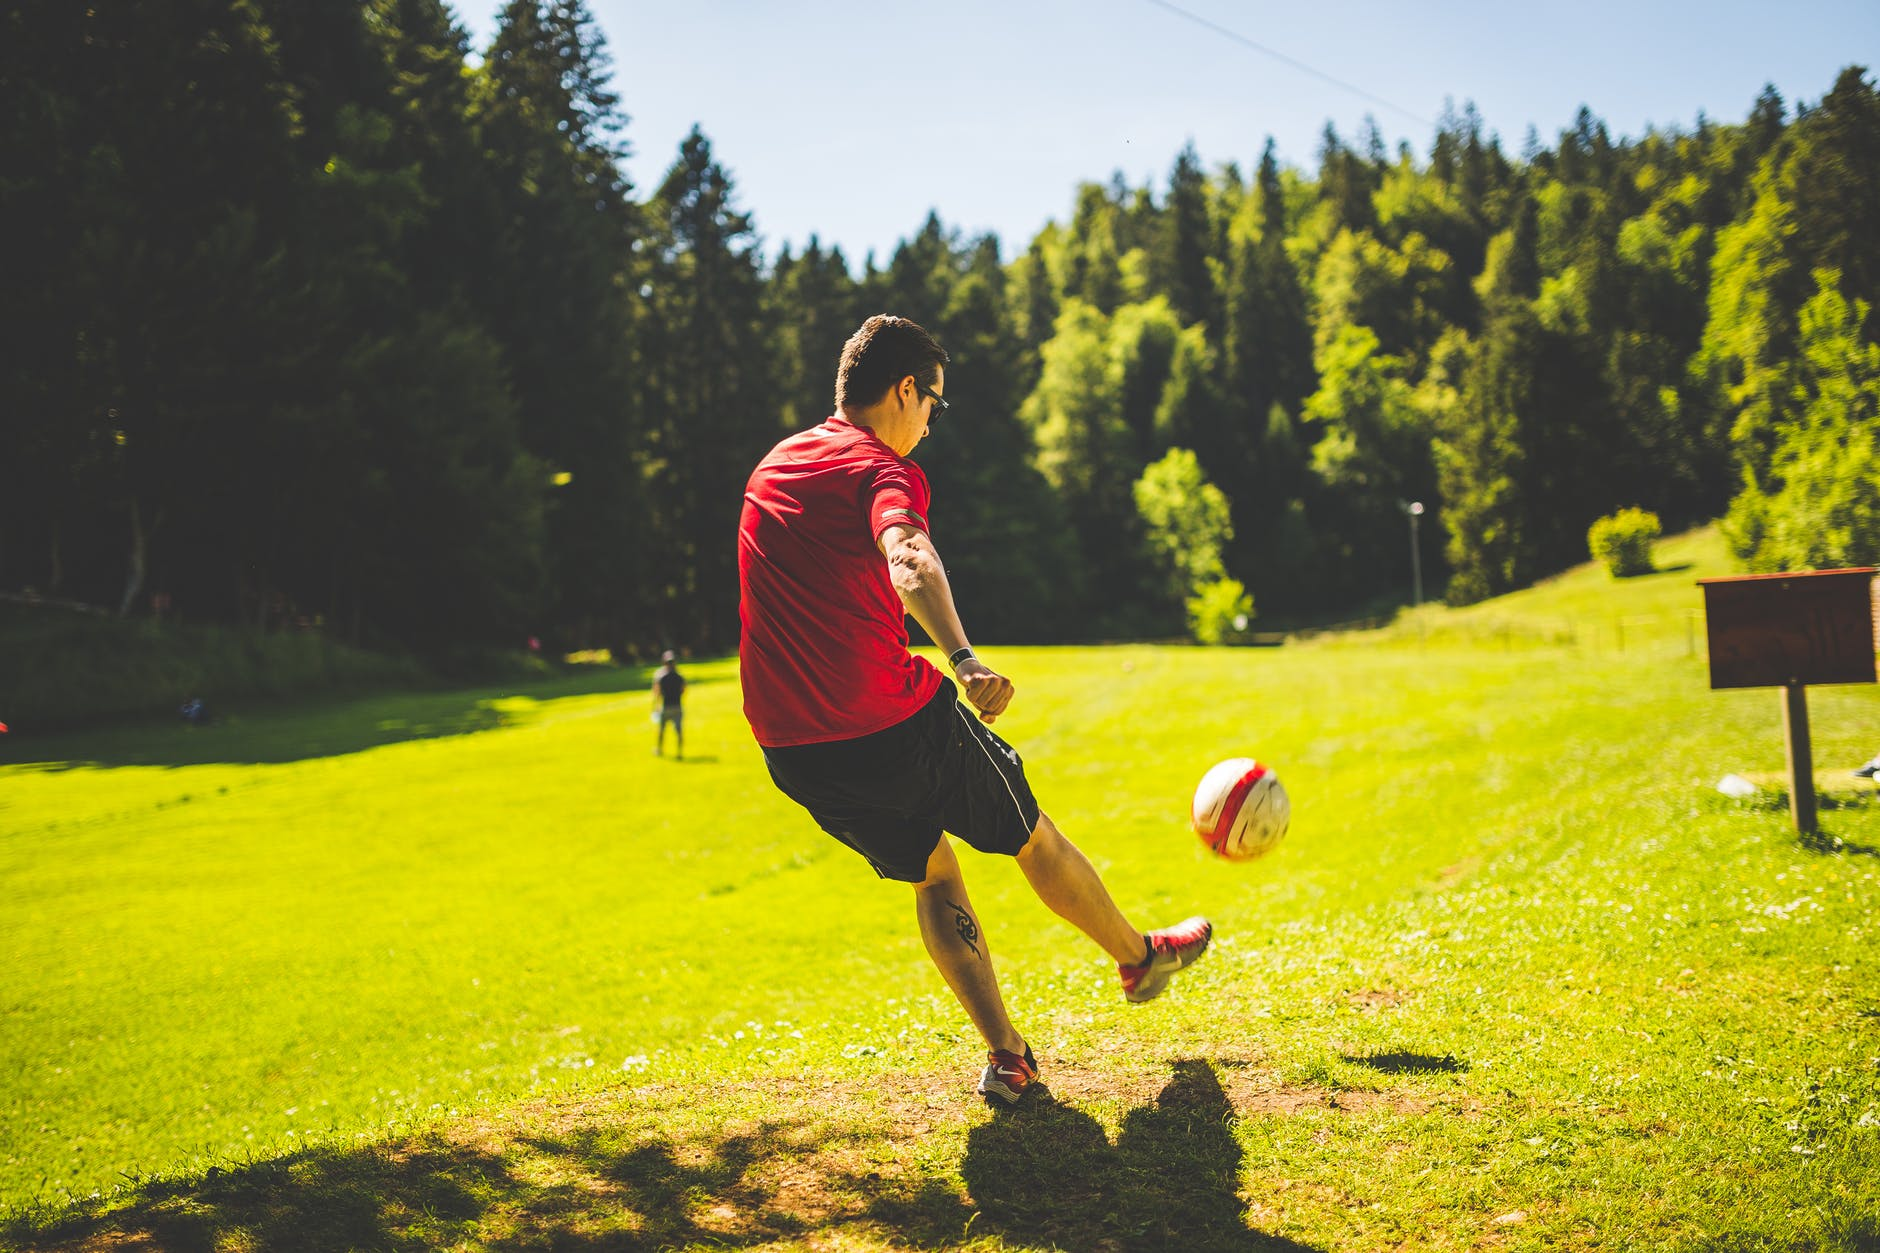 Soccer player practicing how to kich a ball